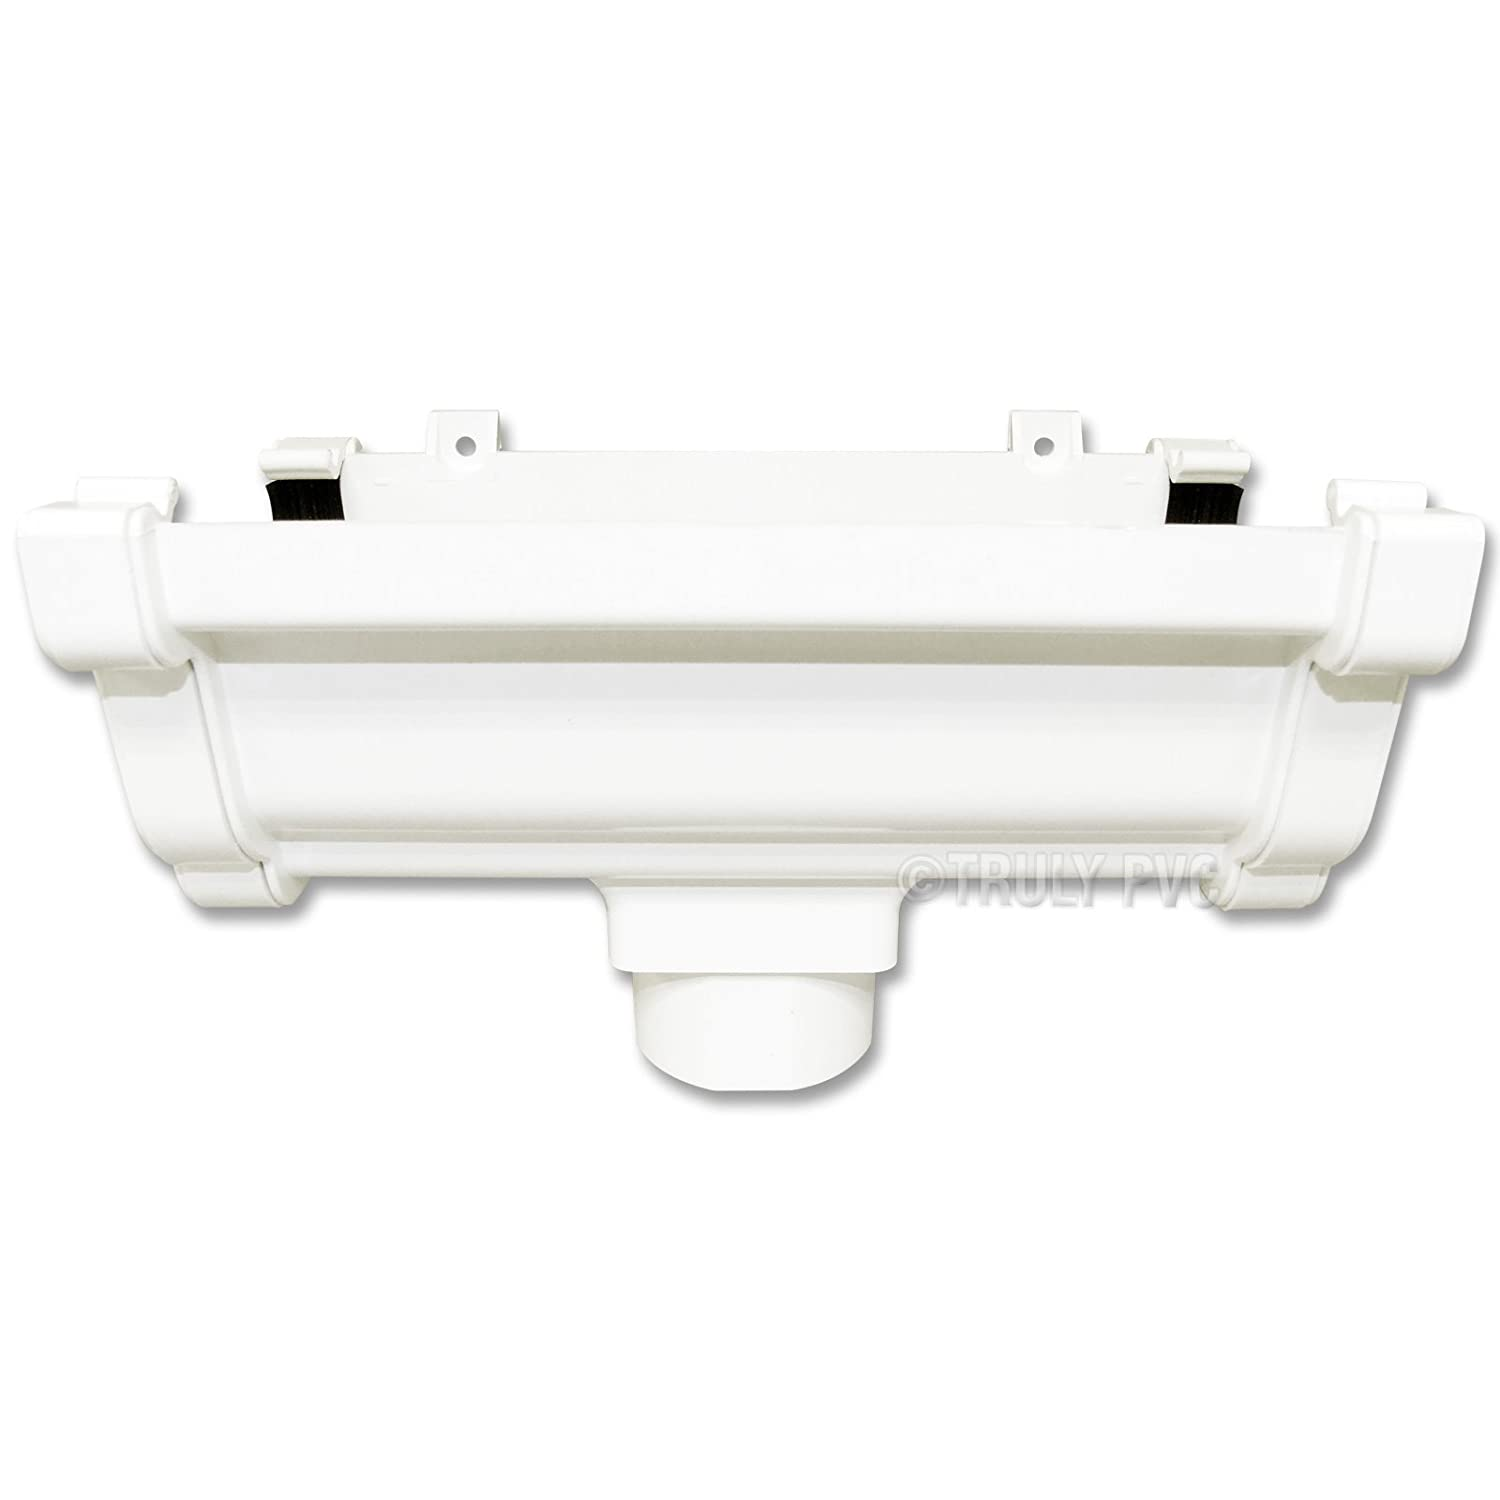 Drain Point White Eurocell RWKO1 Marshall Tufflex Conservatory Gutter Running Outlet for Downpipe